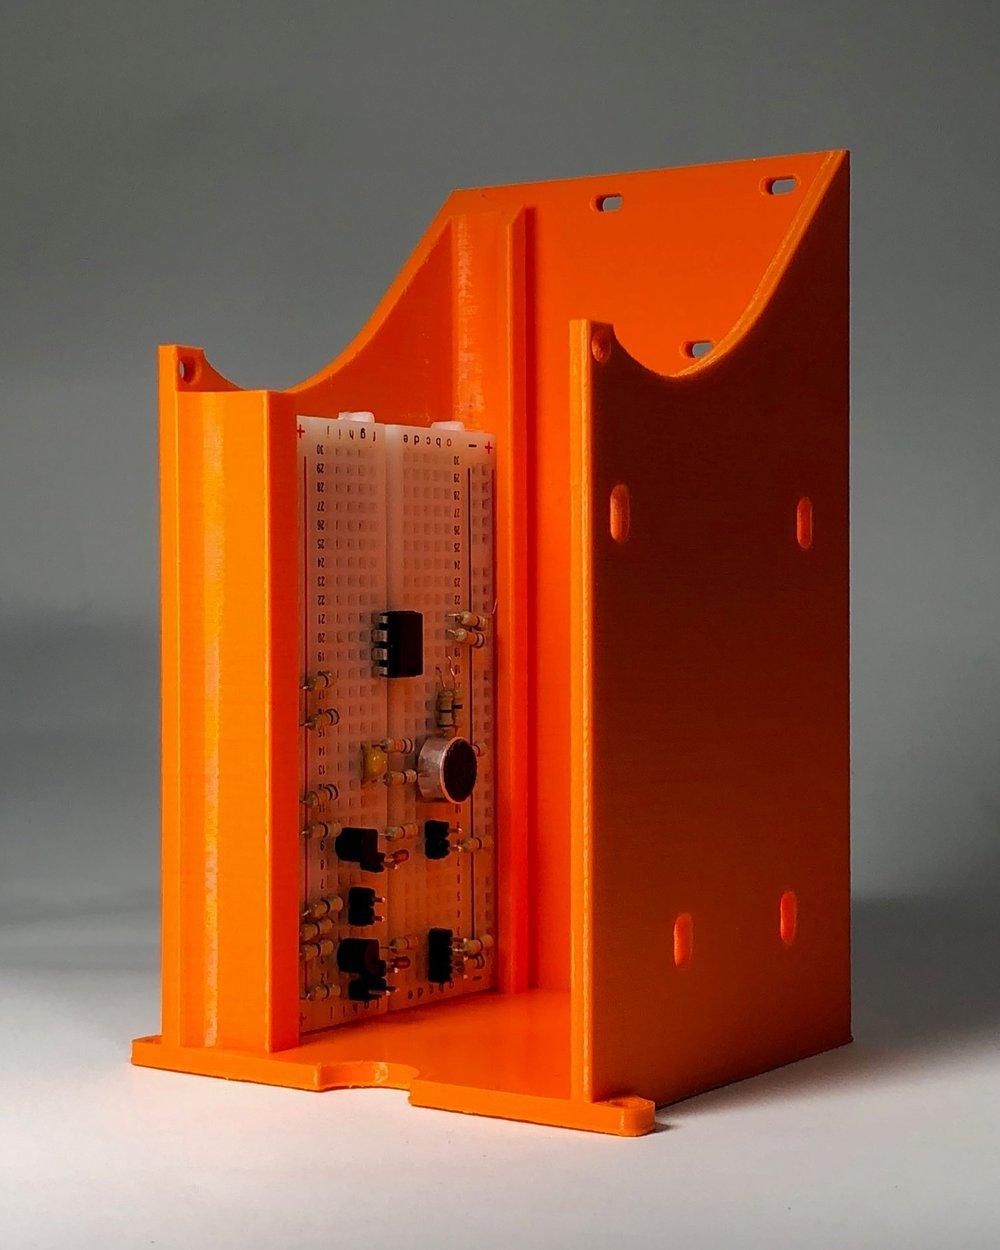 FDM - Quick. Simple. Low-cost.